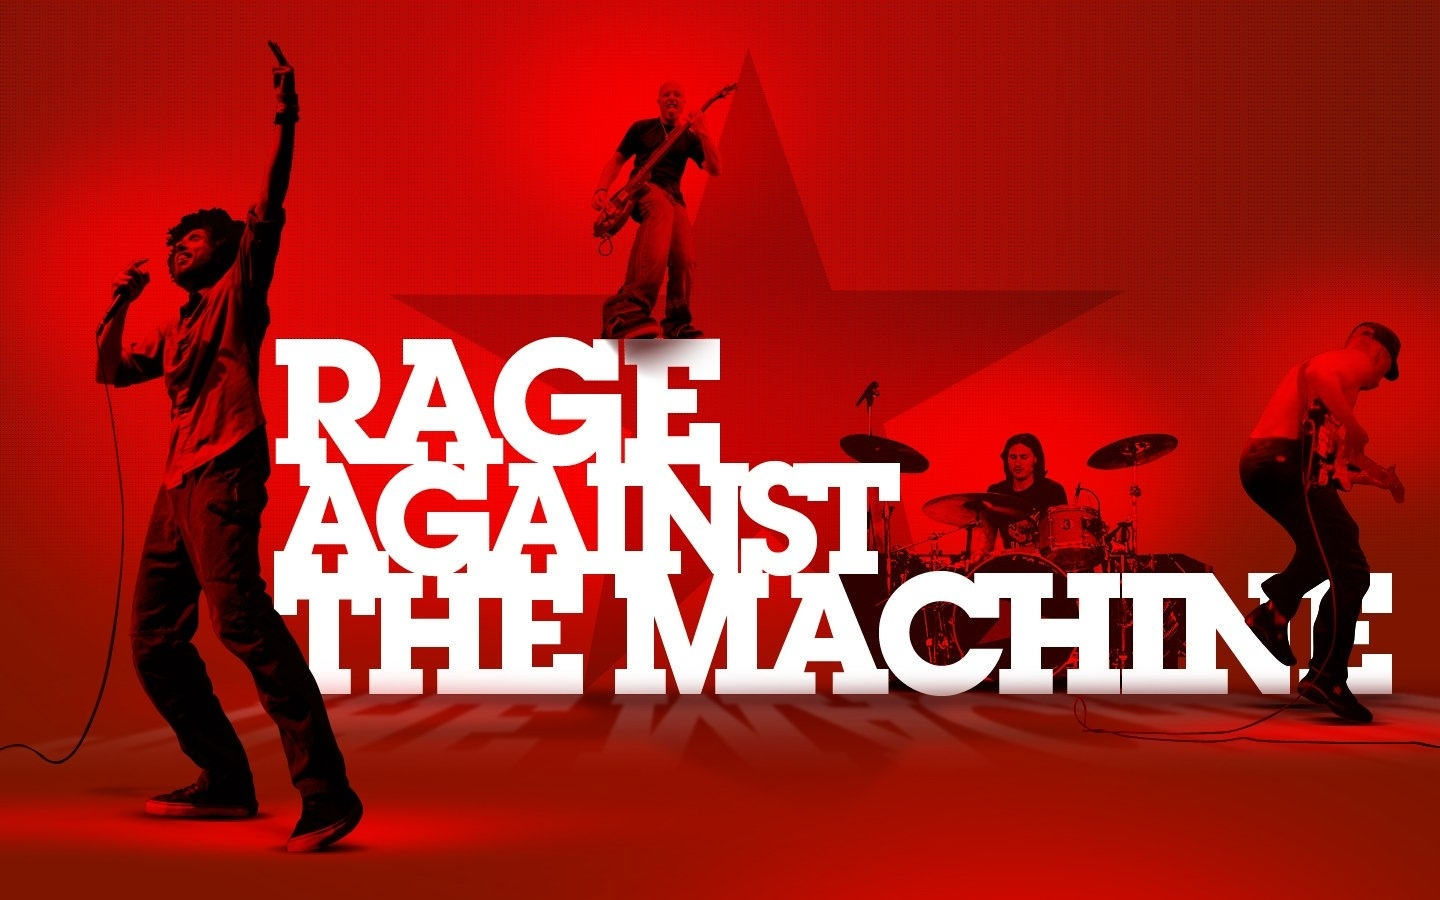 15 rage against the machine hd wallpapers | background images